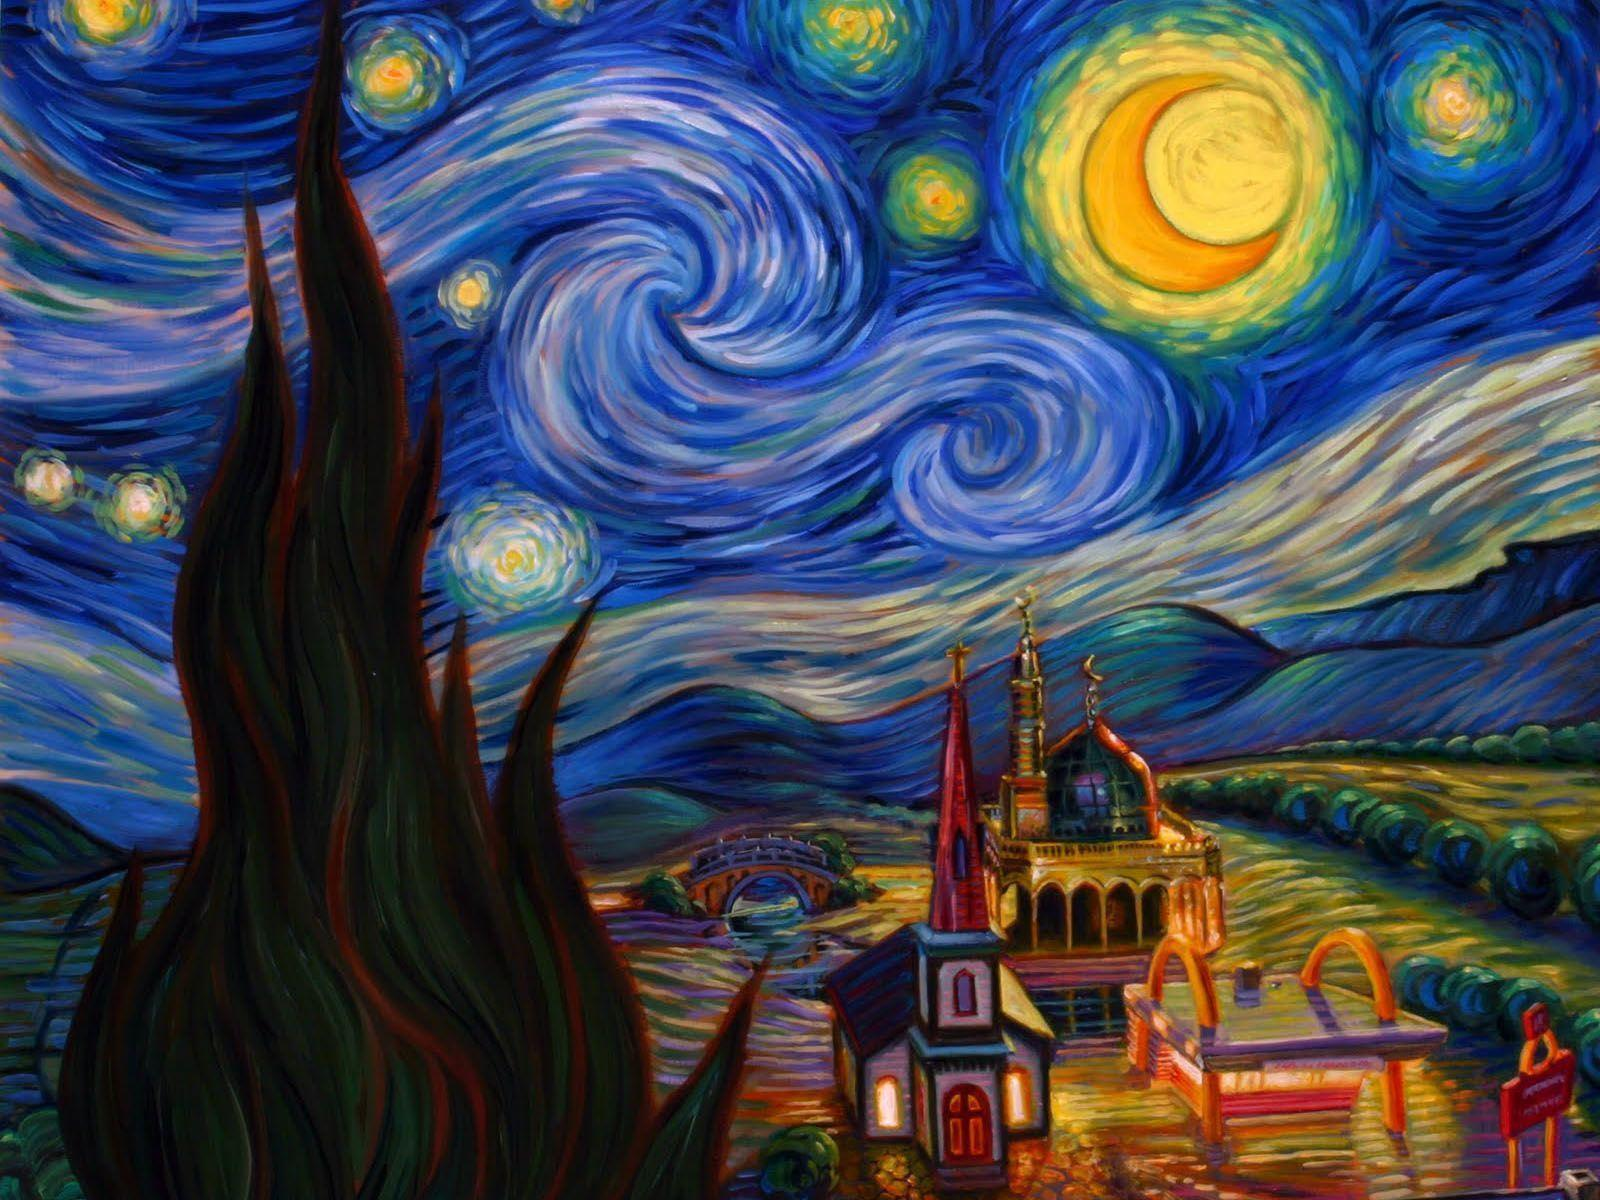 THE STORY OF STARRY NIGHT Vincent Van Gogh Painted Starry Night In 1889 During His Stay At The Asylum Of SaintPauldeMausole Near SaintRémydeProvence